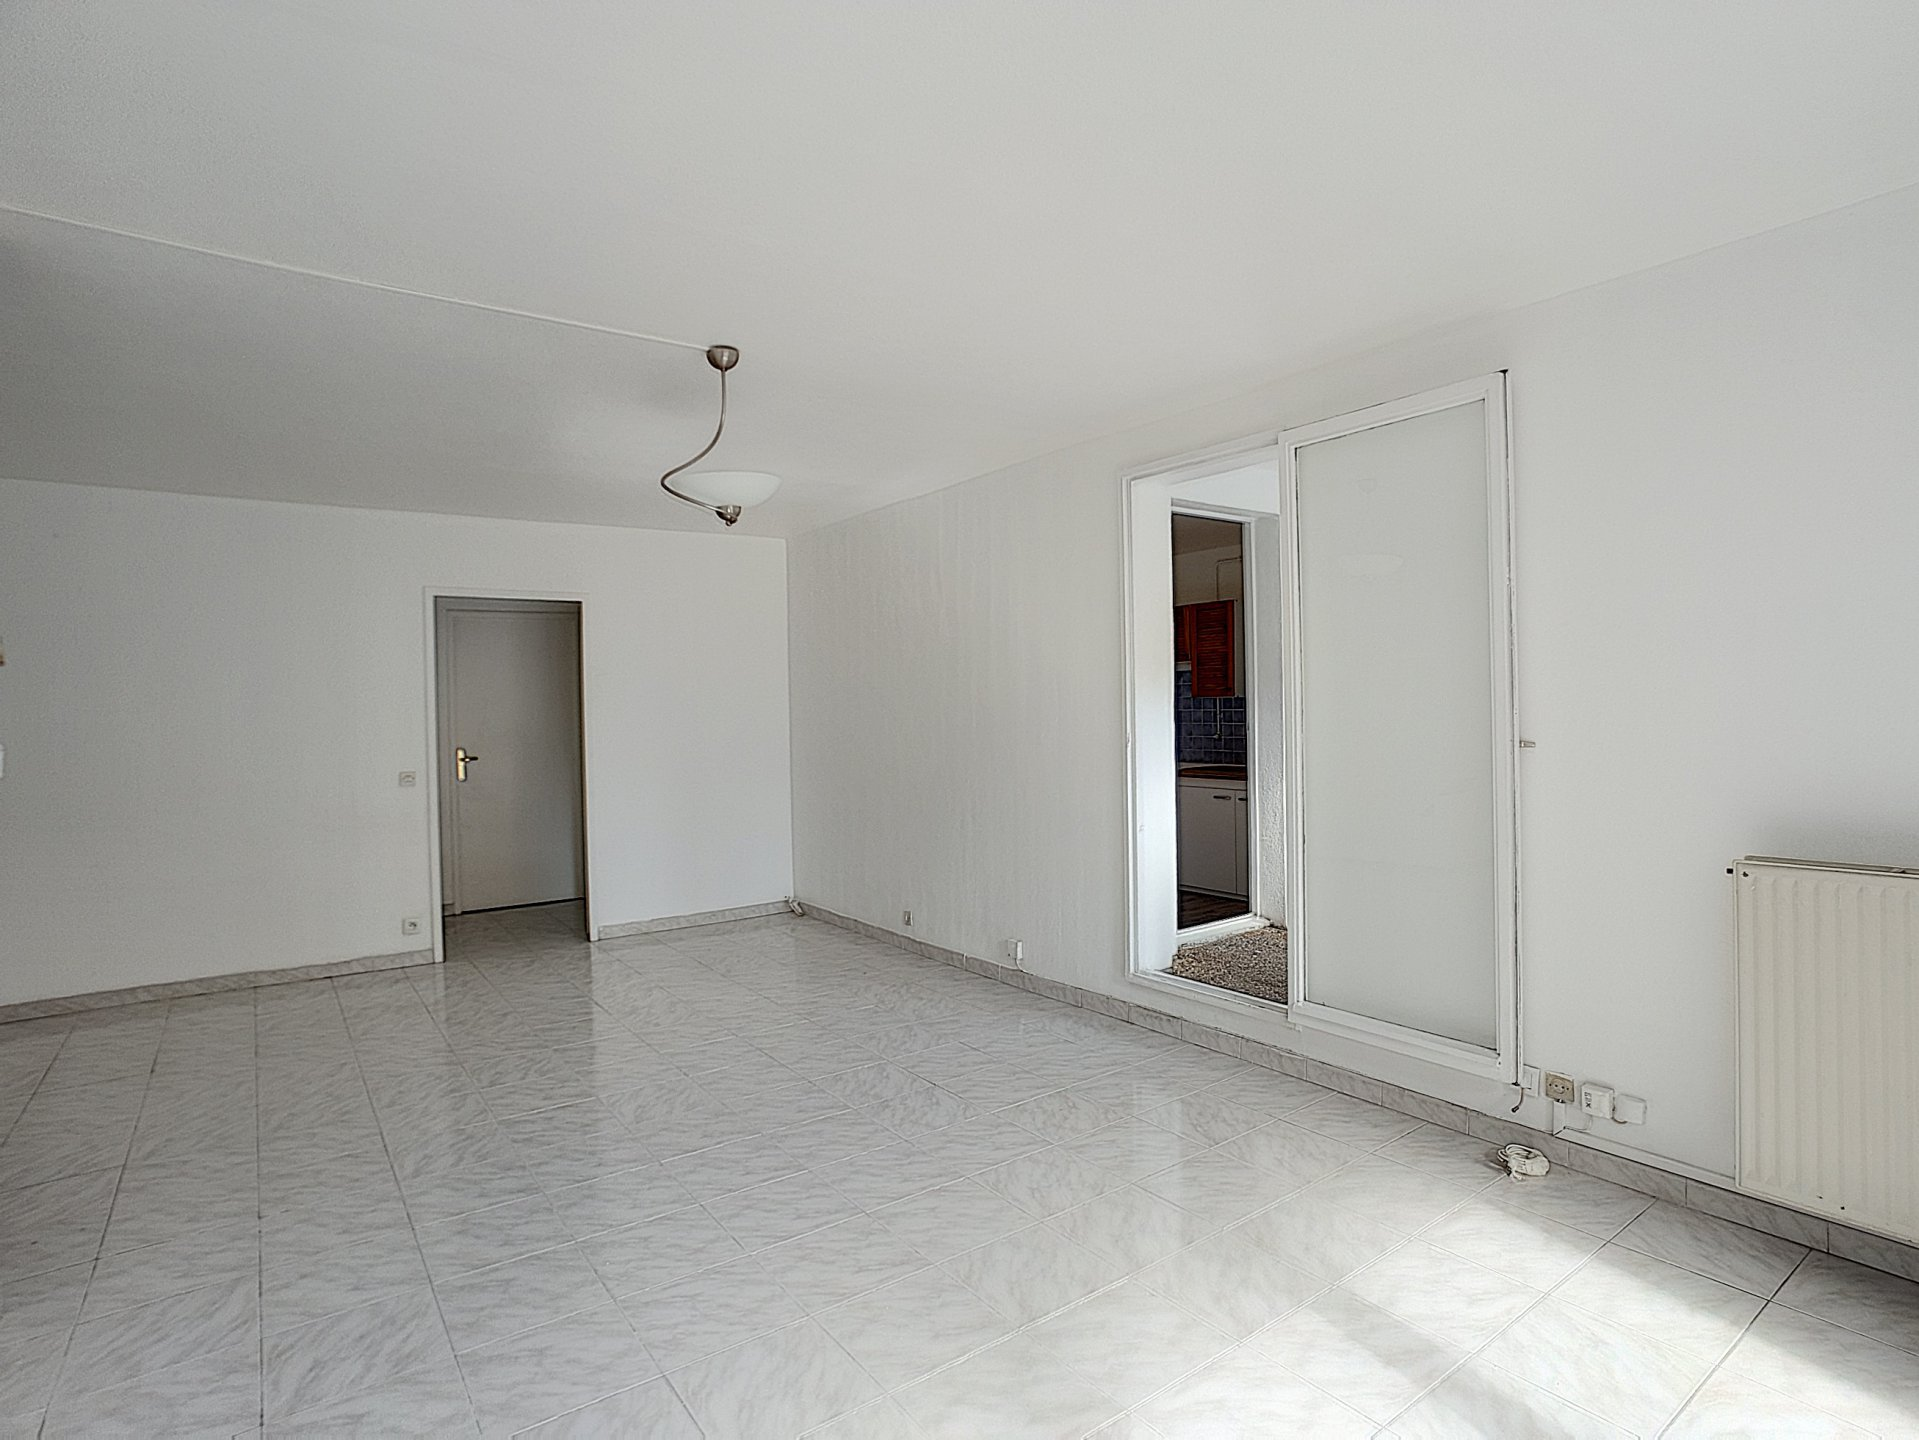 3 rooms apartment  with garage in the heart of Sophia Antipolis